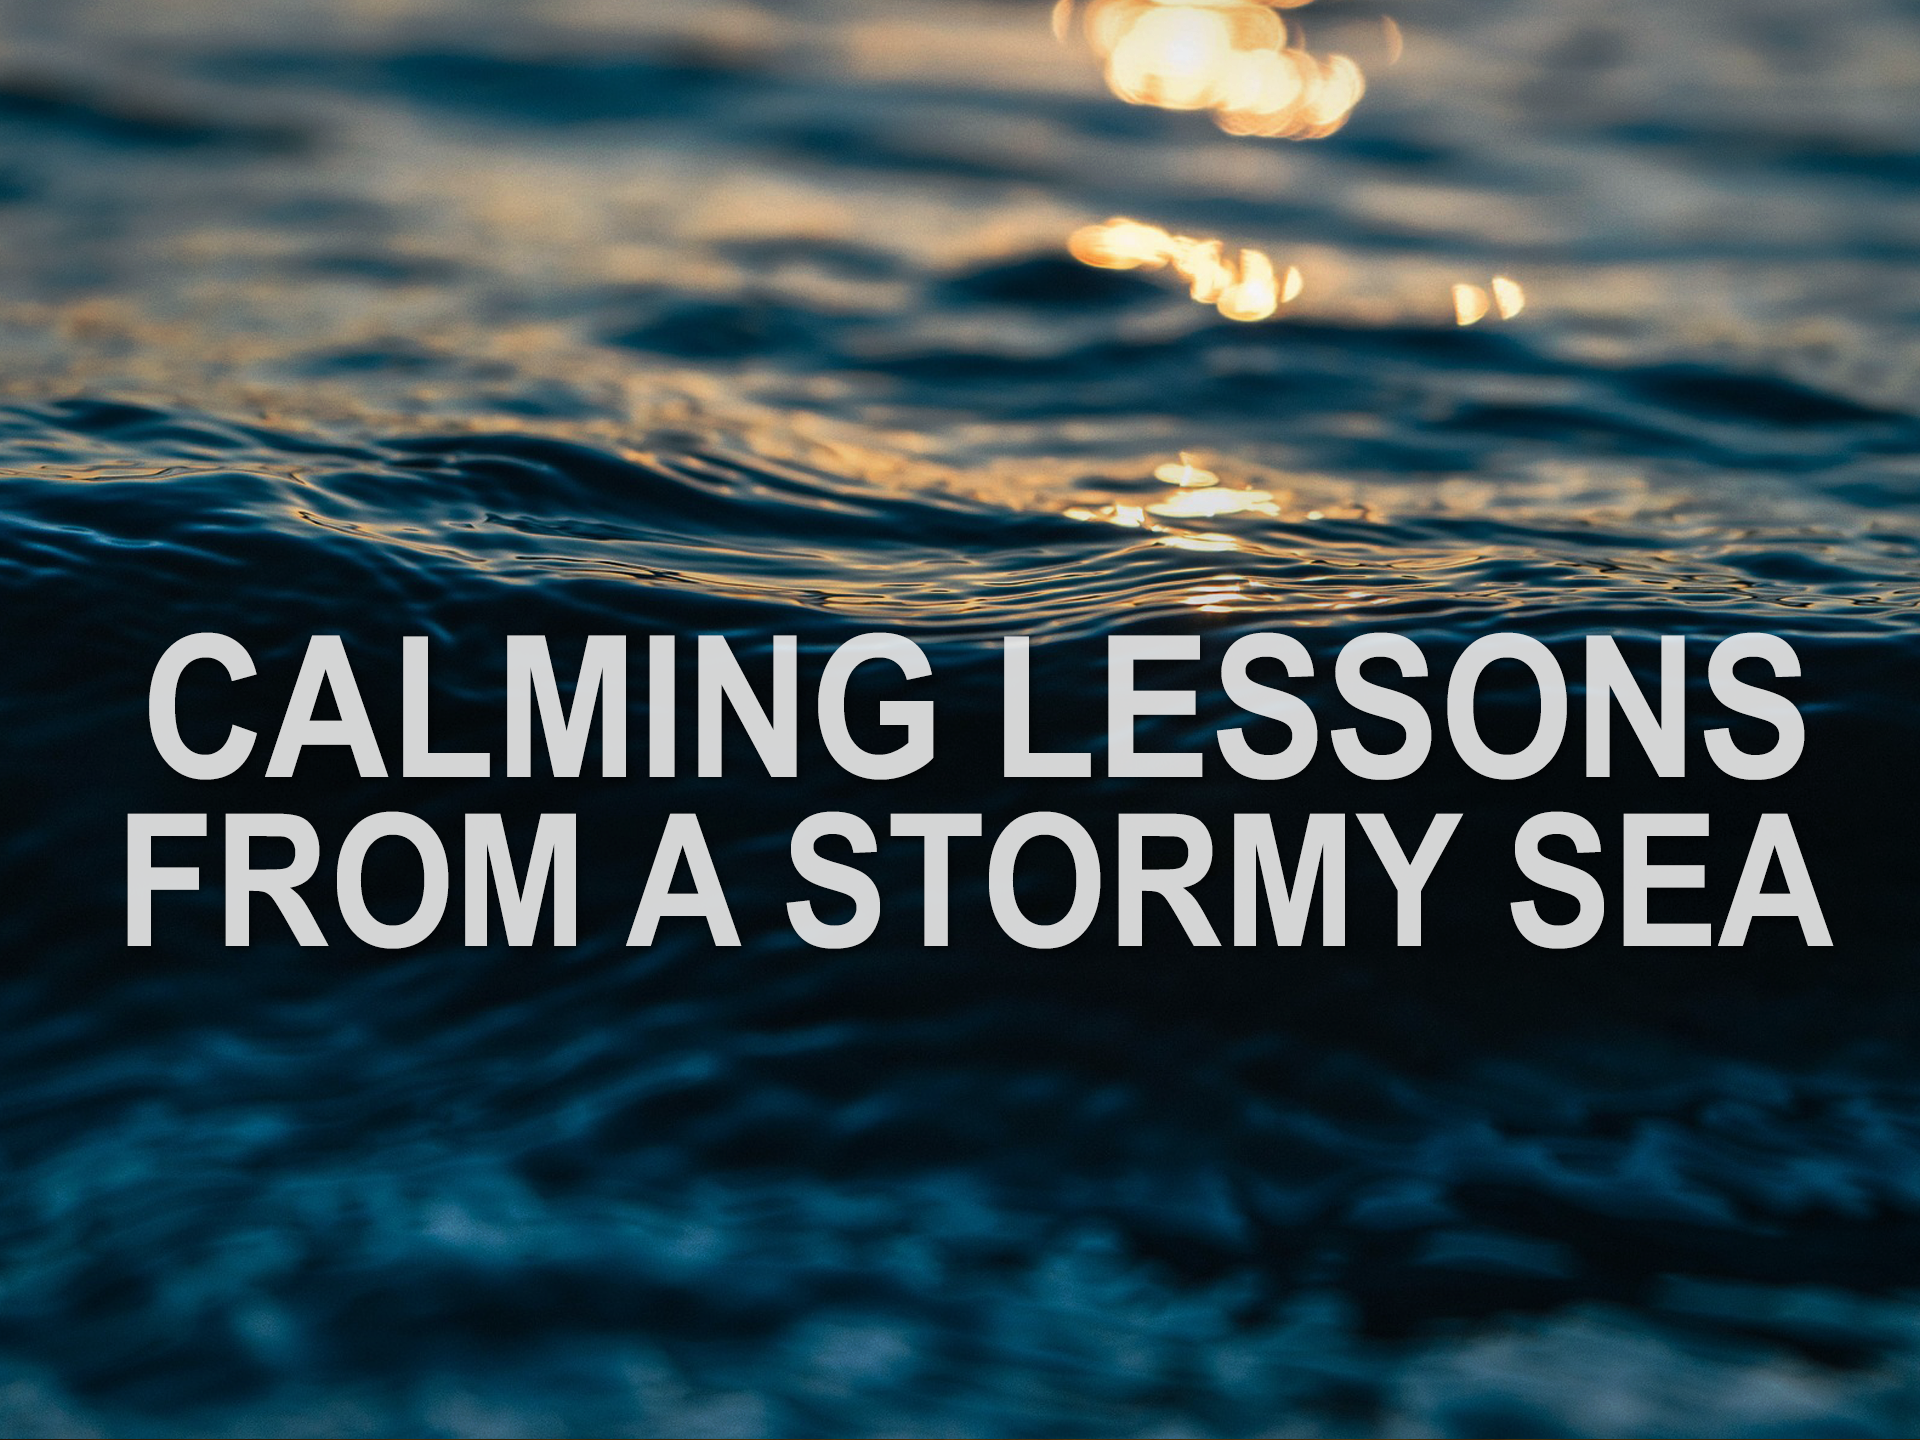 092919 calming lessons from a stormy sea.png